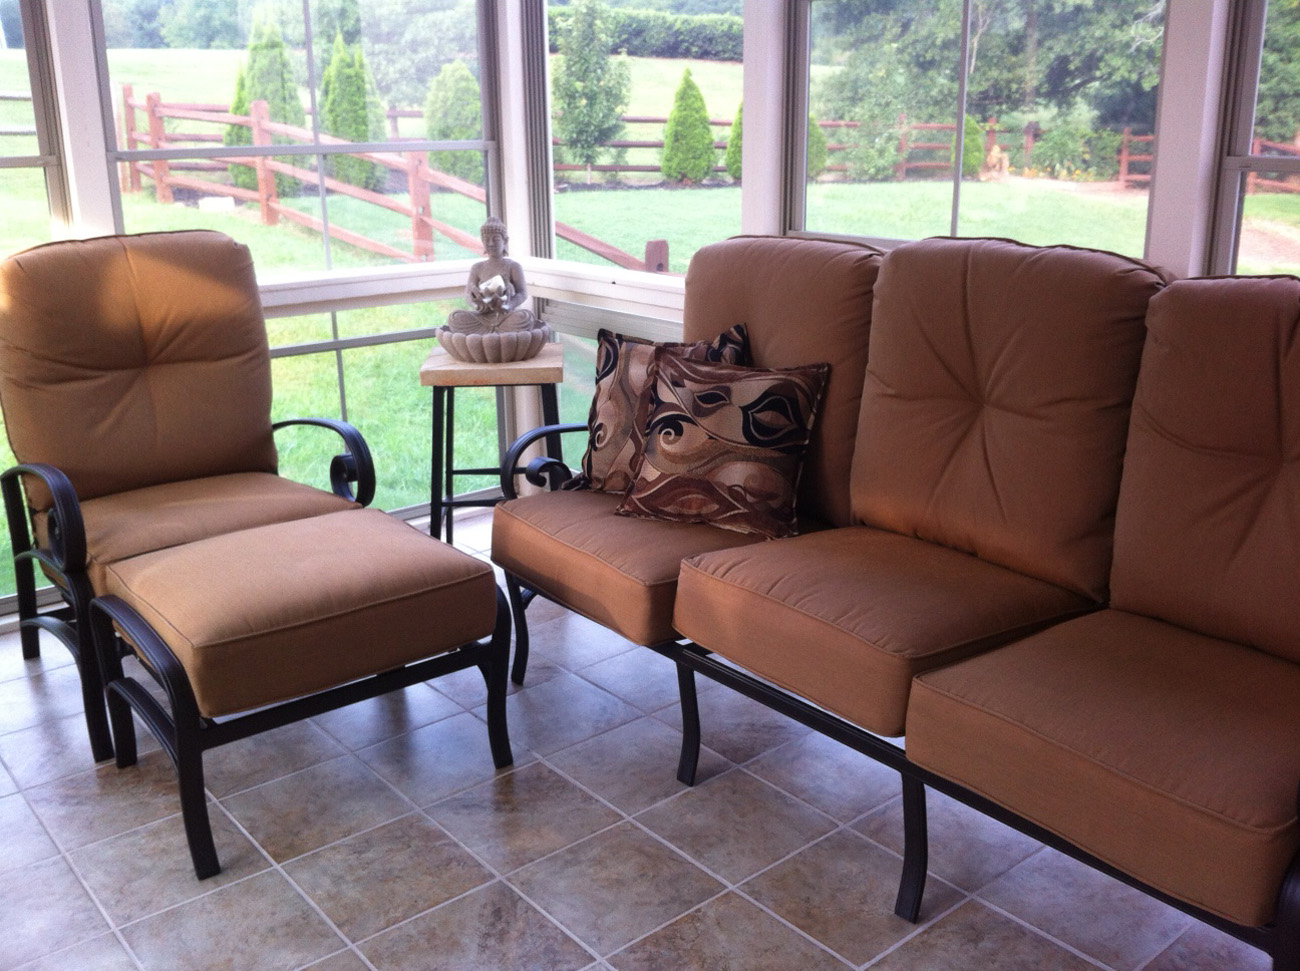 Fashion corner bountiful utah - Do You Still Need Further Protection Or Extended Outdoor Living Function Replace The Screens With Porch Windows Such As Eze Breeze For A Flexible Space To